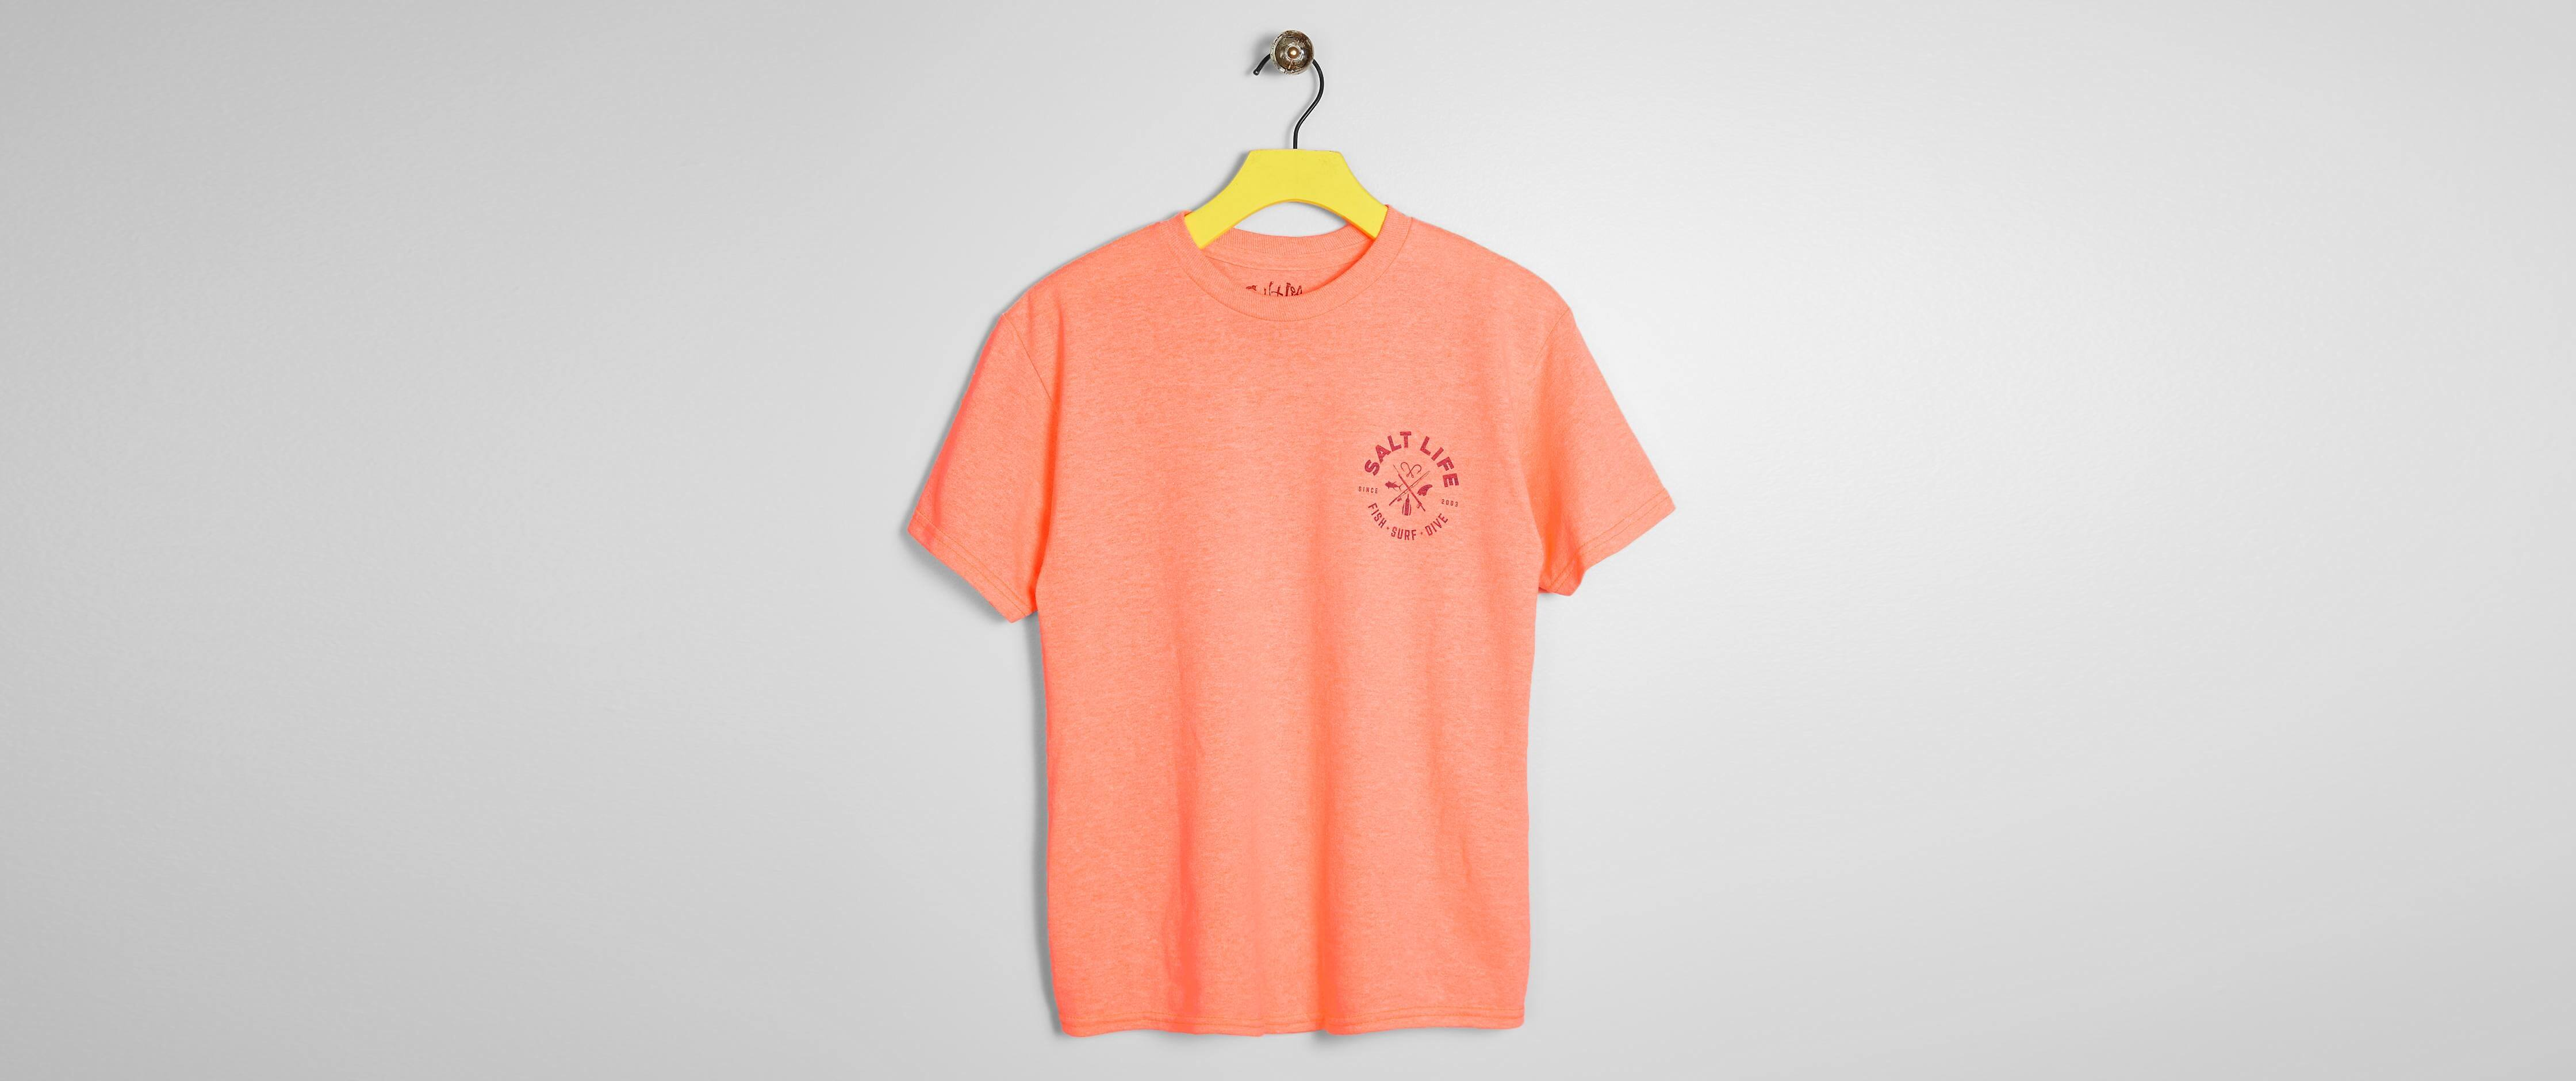 Boys - Salt Life Friction T-Shirt | Tuggl